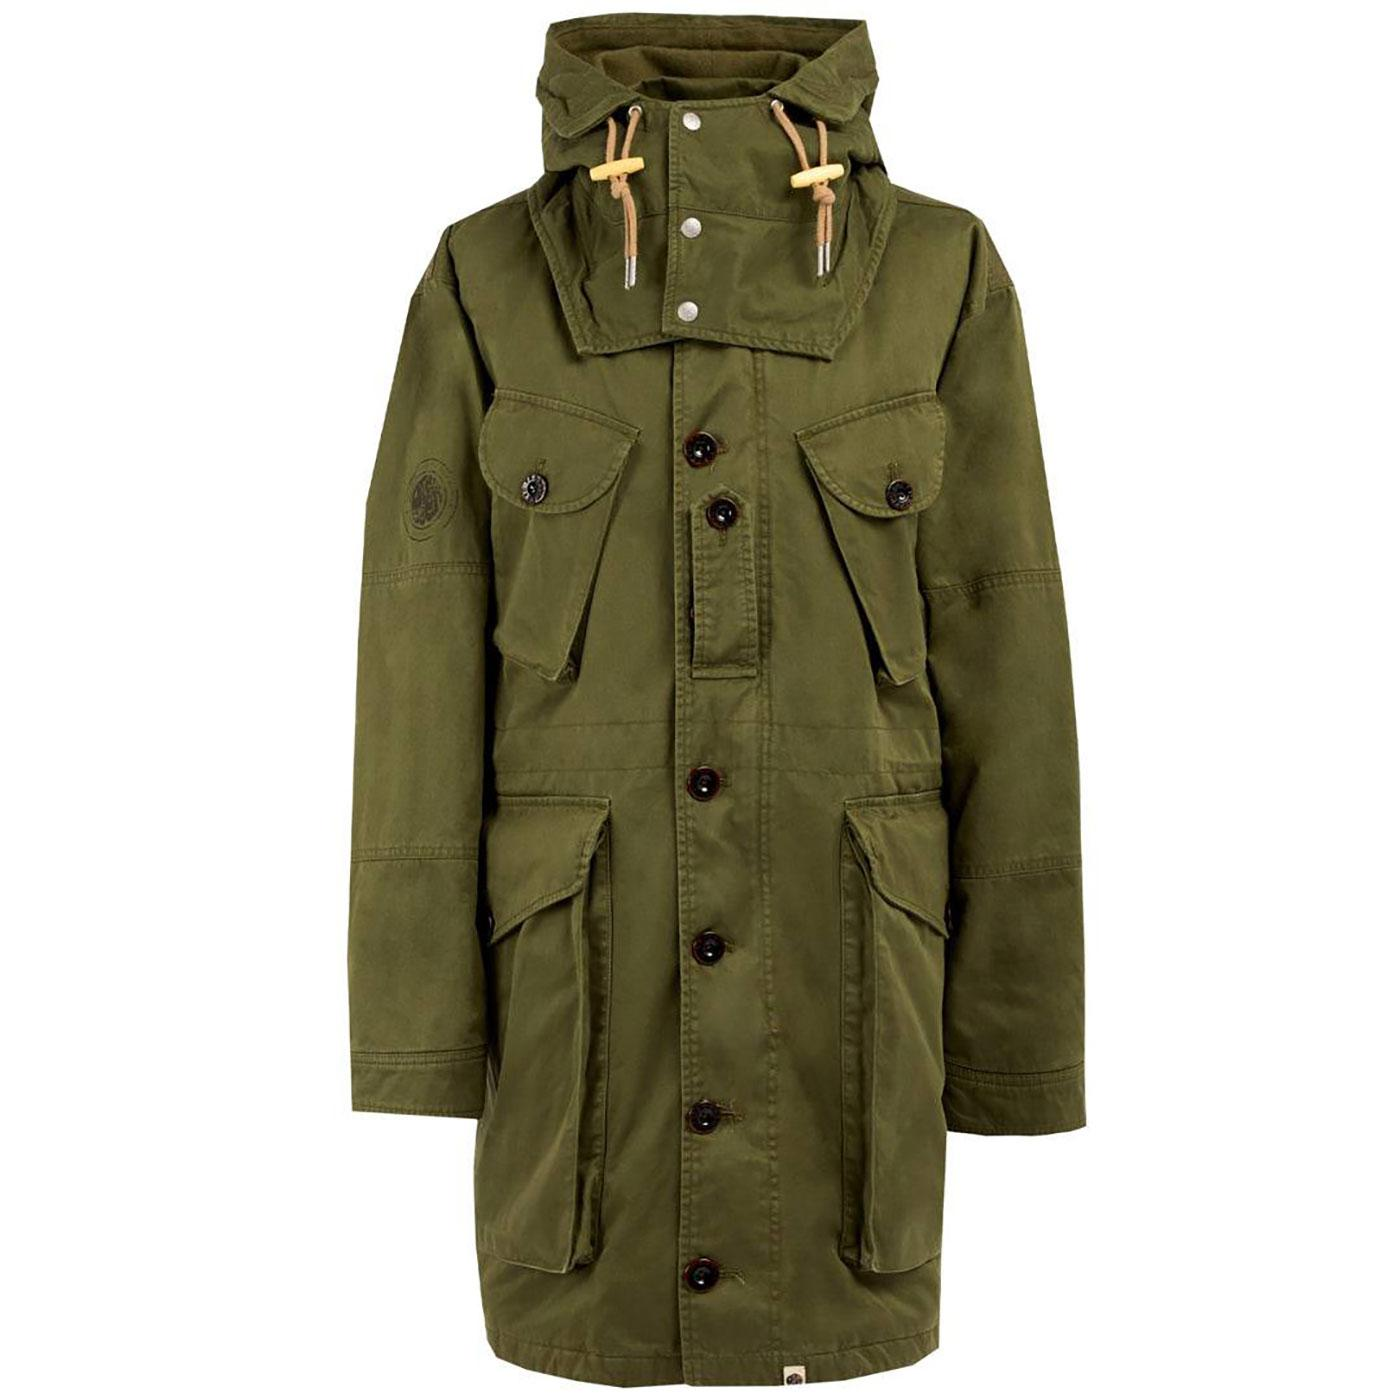 PRETTY GREEN 1960's Mod Heavyweight Parka Jacket